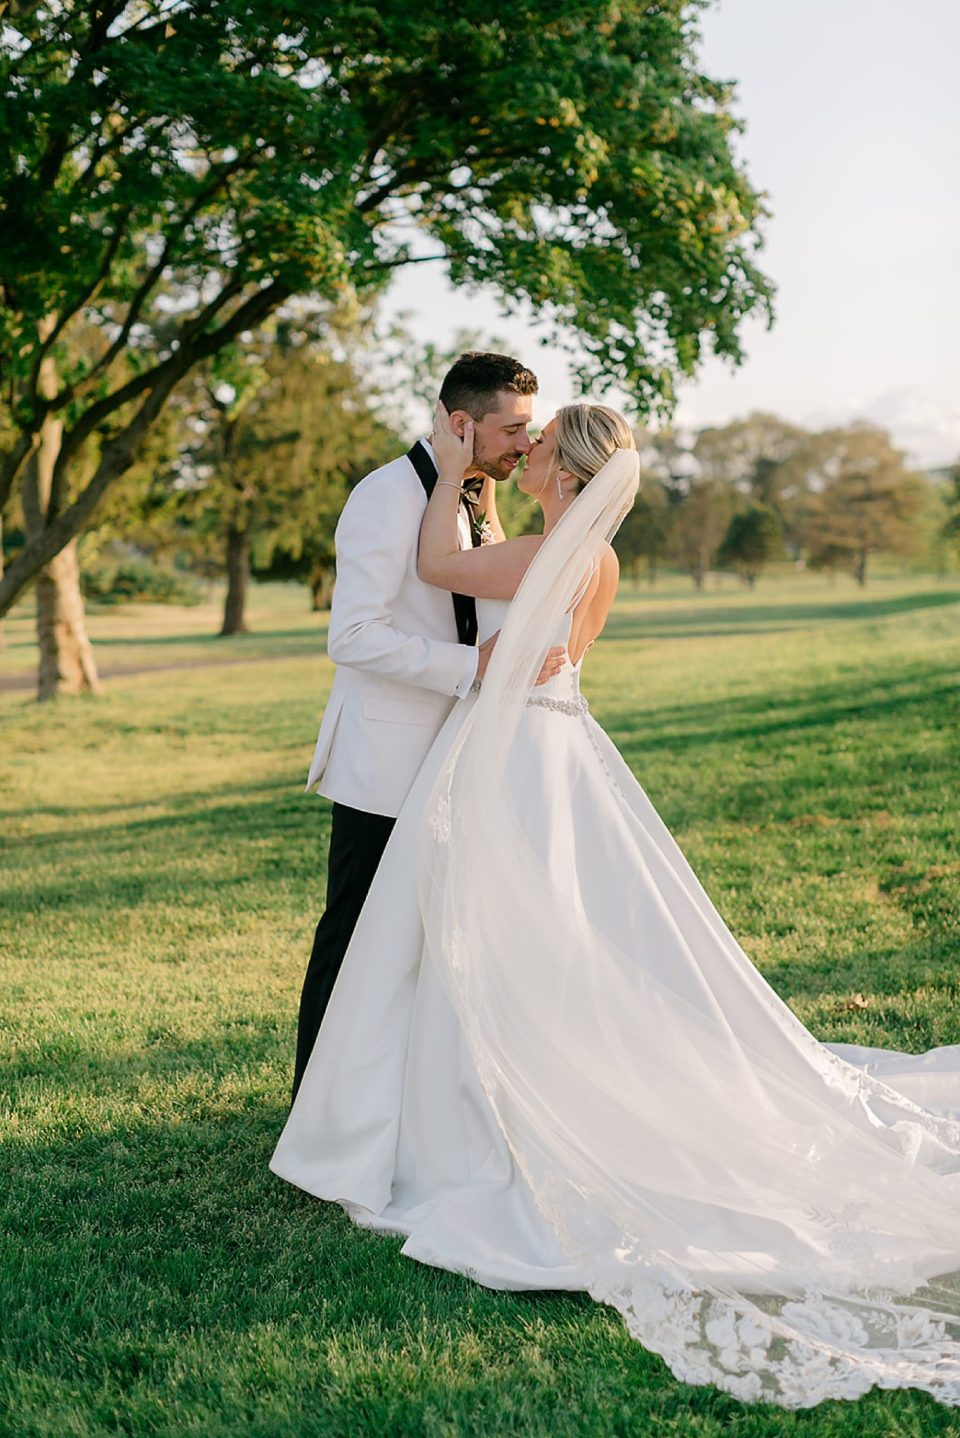 Linwood Country Club Summer Wedding Photography Studio by Magdalena Studios Jenn Kyle 0045 scaled